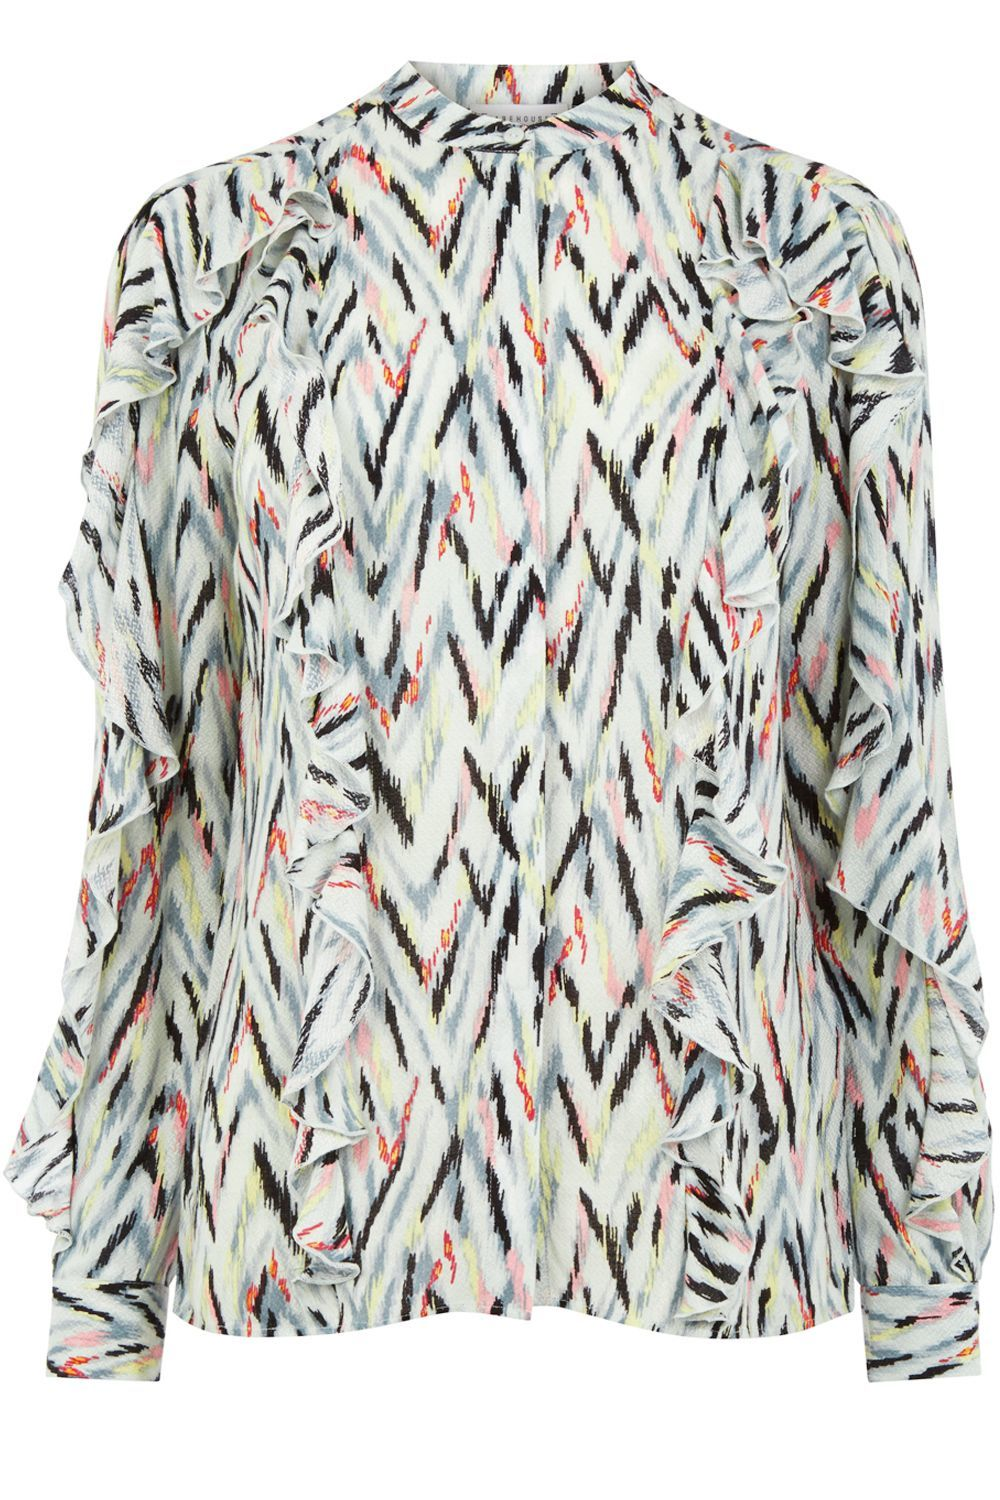 Zig Zag Print Ruffle Blouse, Multi Coloured - style: blouse; predominant colour: pistachio; secondary colour: coral; occasions: casual, creative work; length: standard; neckline: collarstand; fibres: polyester/polyamide - 100%; fit: straight cut; sleeve length: long sleeve; sleeve style: standard; bust detail: bulky details at bust; pattern type: fabric; pattern size: standard; pattern: patterned/print; texture group: woven light midweight; multicoloured: multicoloured; season: a/w 2016; wardrobe: highlight; trends: statement sleeves